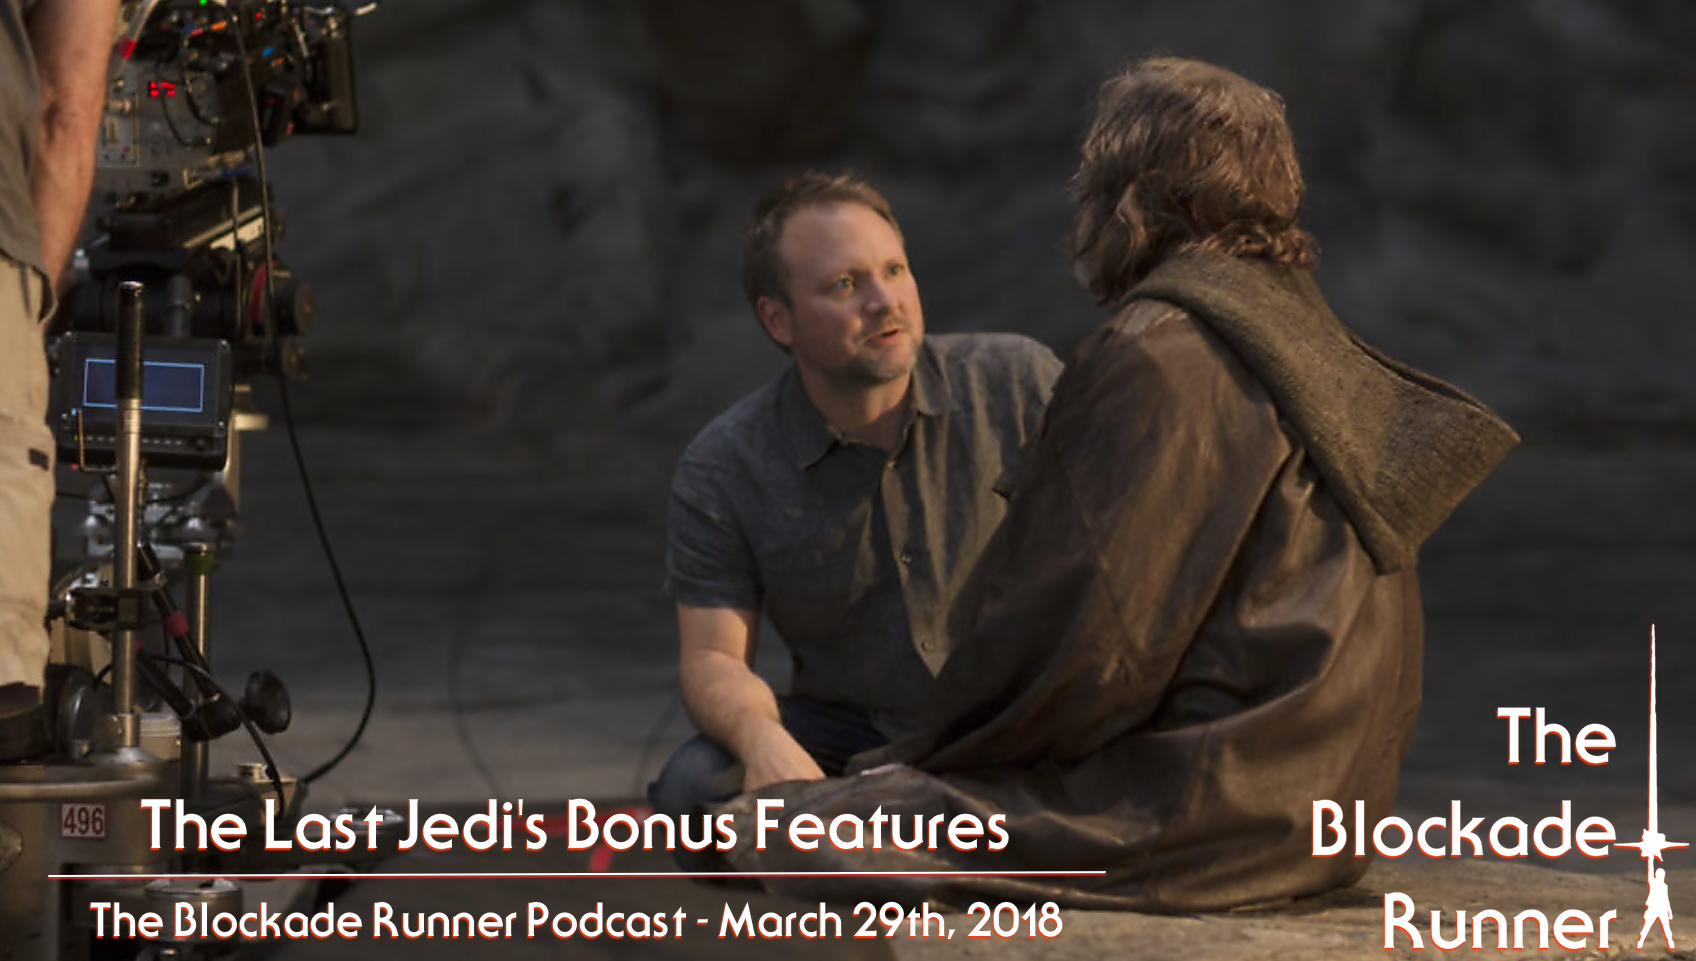 TLJ Bonus Features Cover